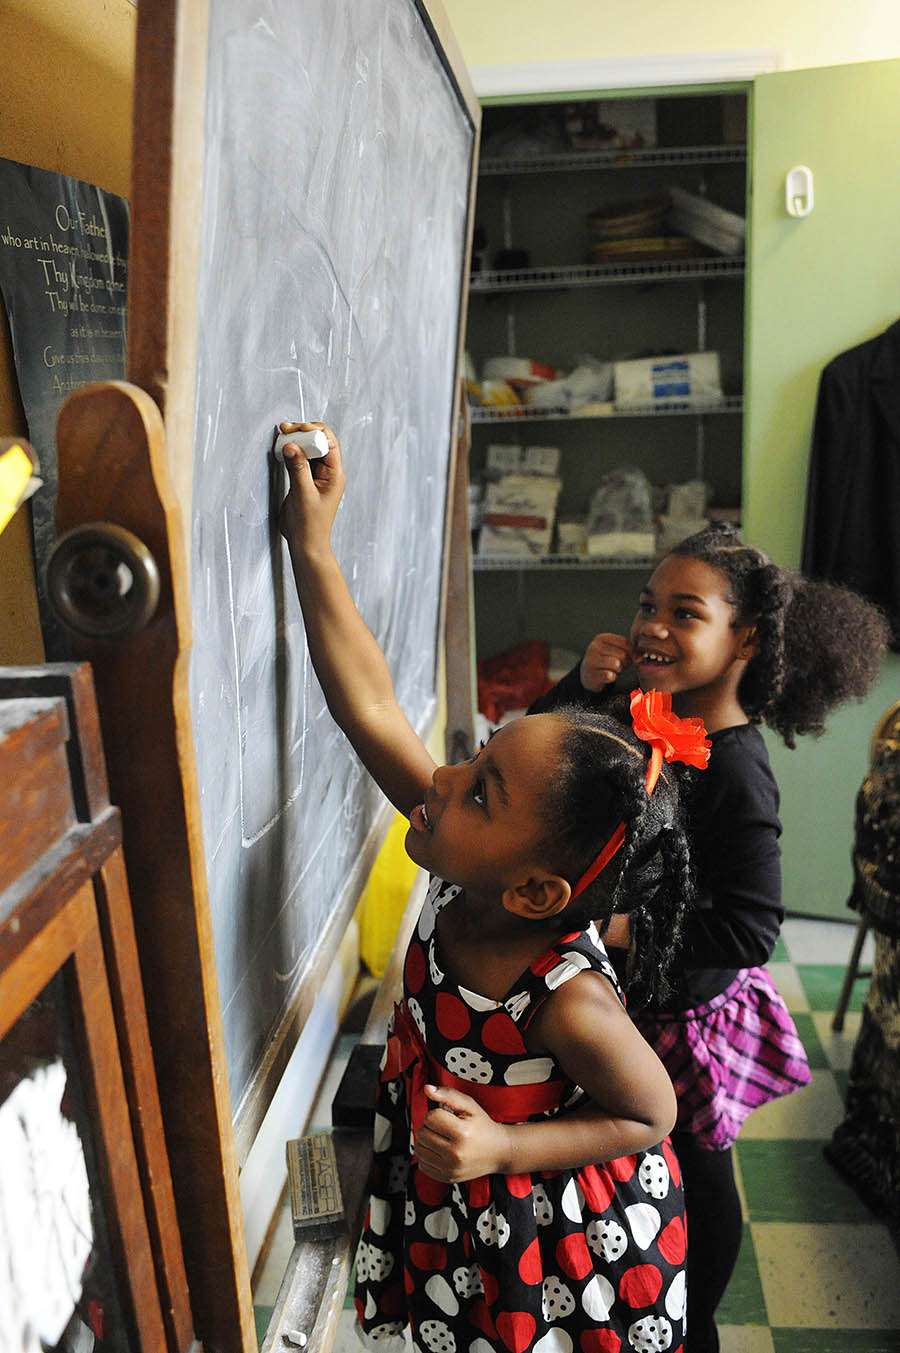 Englaind Ware, 5, and cousin Eliyrah Ware, 6, play school on a chalkboard during a soul food lunch at Ebenezer Baptist Church on Sunday, Feb. 24, 2013, in Staunton. The soul food spread included cornbread, baked beans, macaroni and cheese, fried chicken, corn, chitlins and pigs feet, plus an array of desserts.